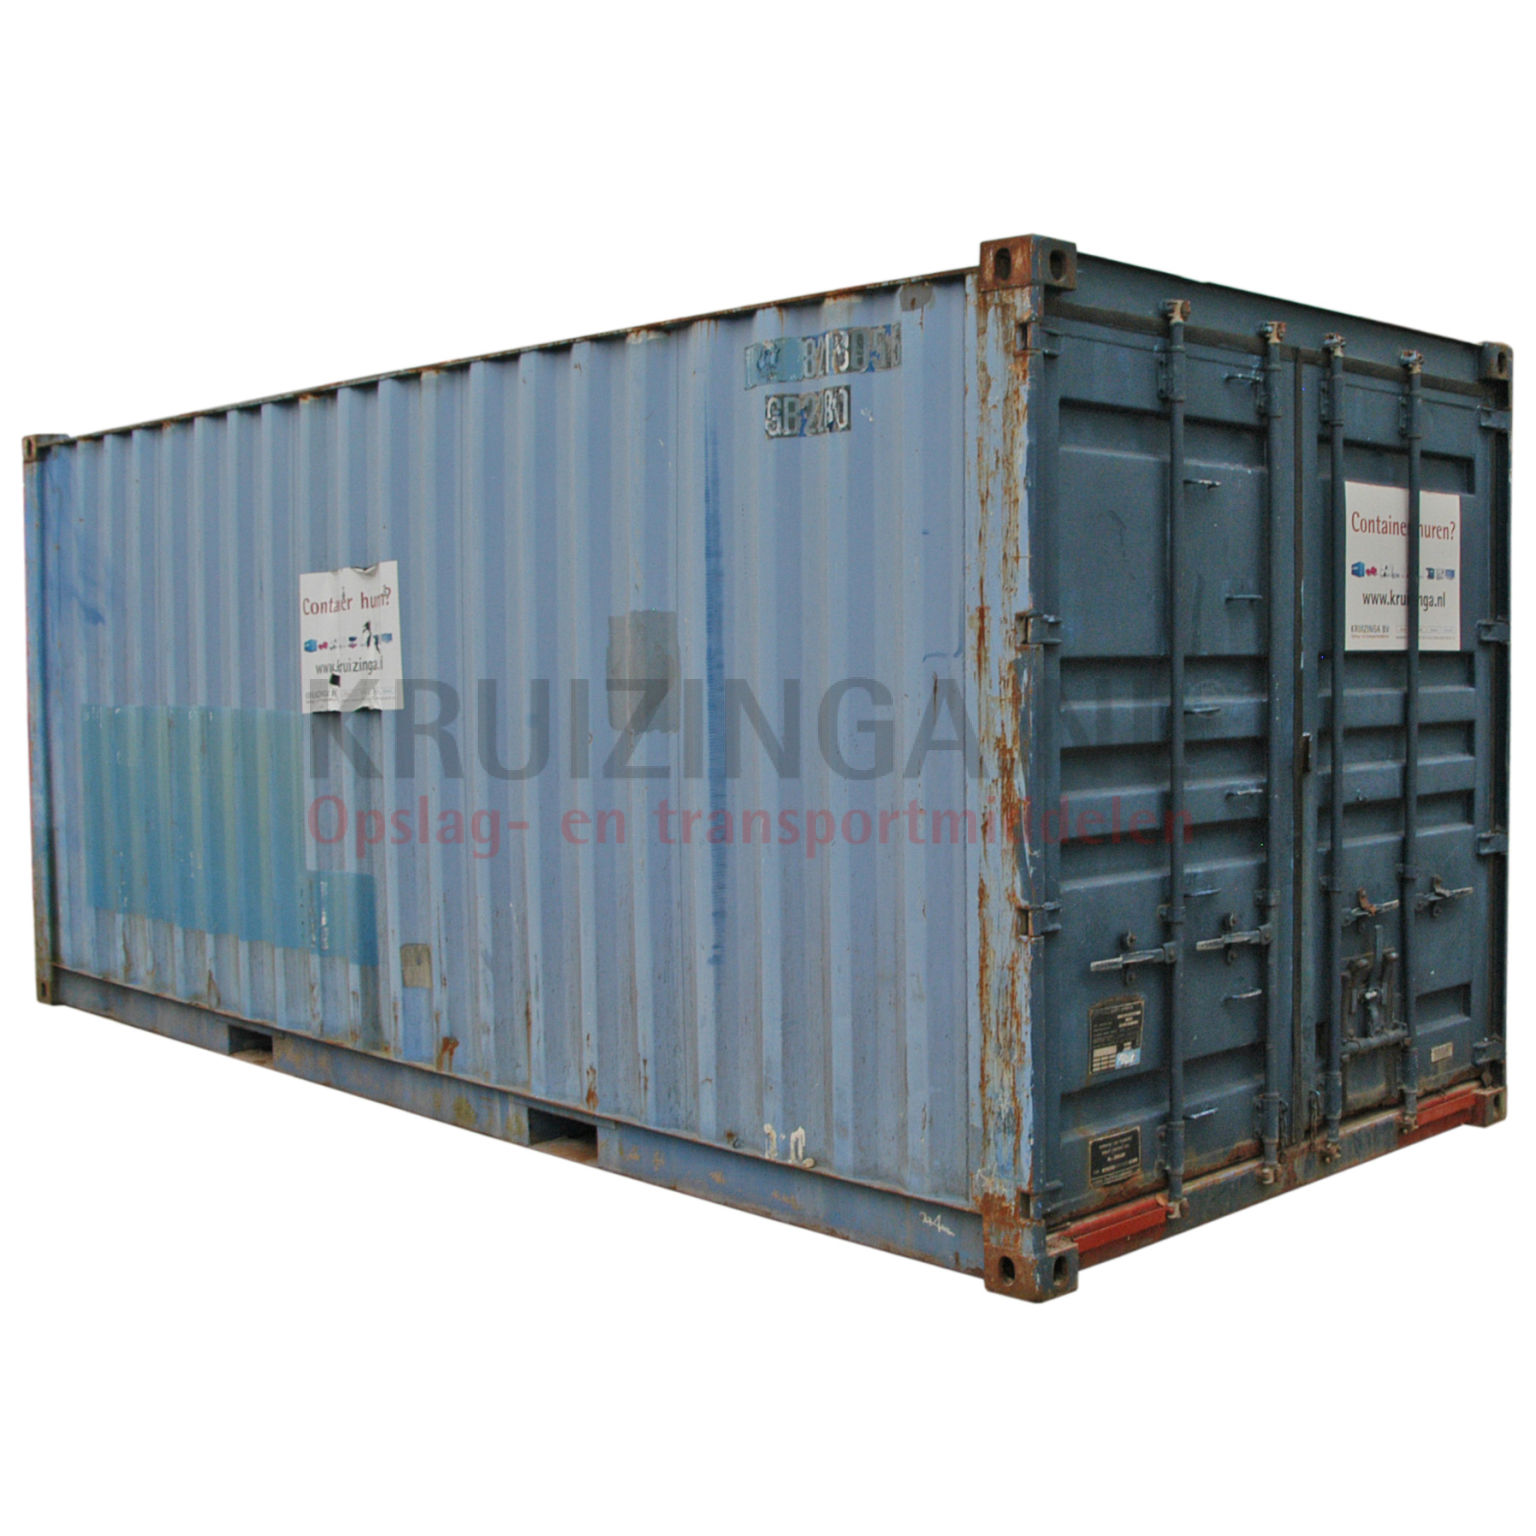 container materialcontainer 20 fu gebraucht 1750. Black Bedroom Furniture Sets. Home Design Ideas